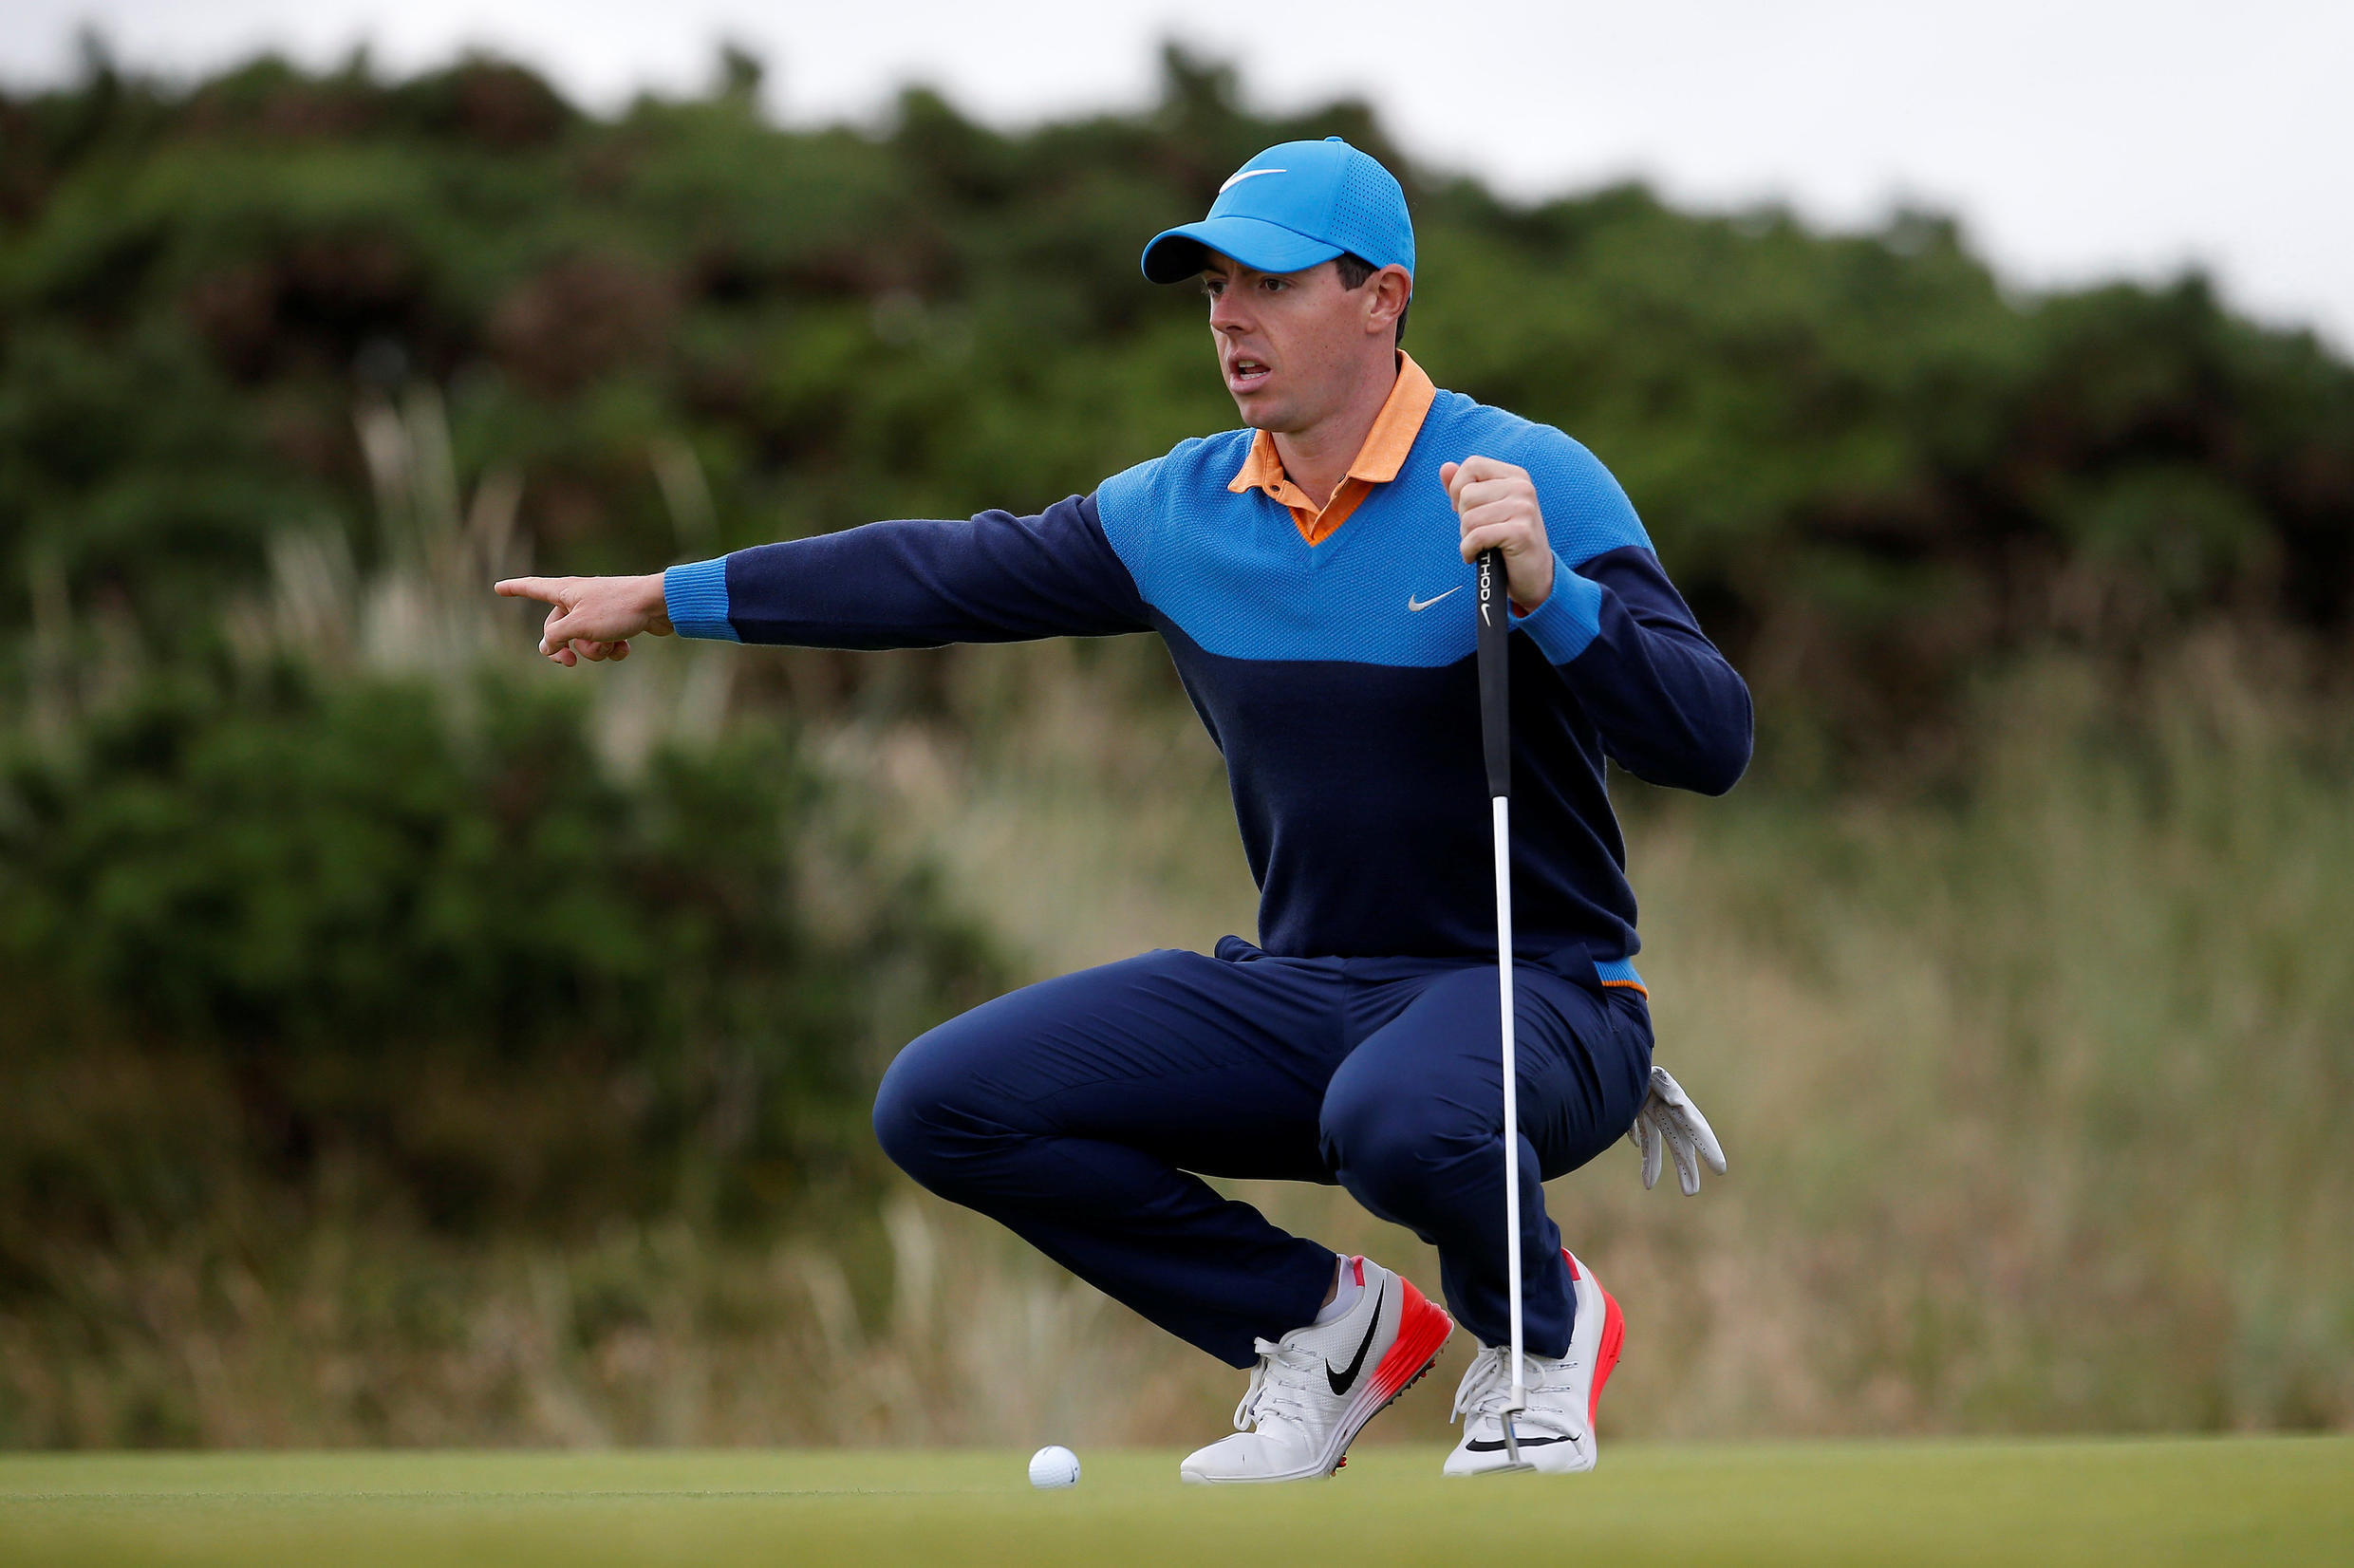 Rory McIlroy of Northern Ireland lines up a putt on the 12th hole at the British Open on 12 of July 2016